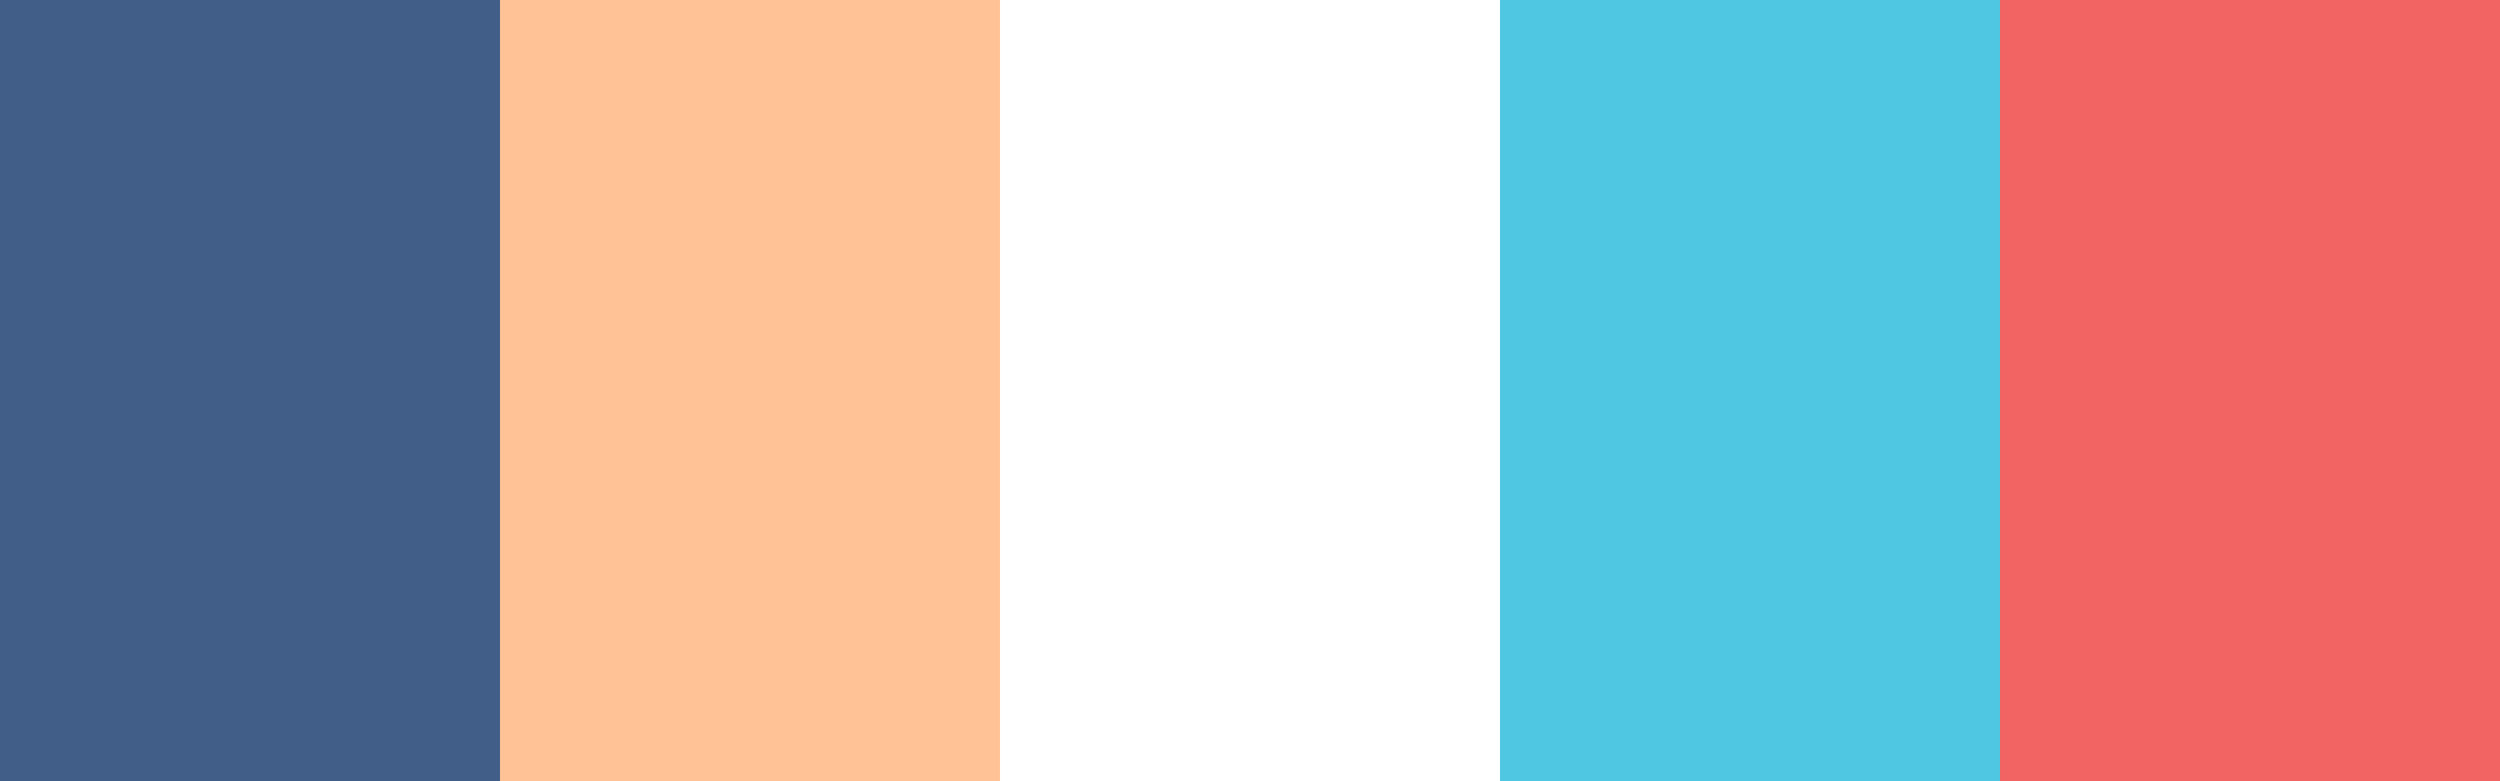 color_Palette-01.jpg